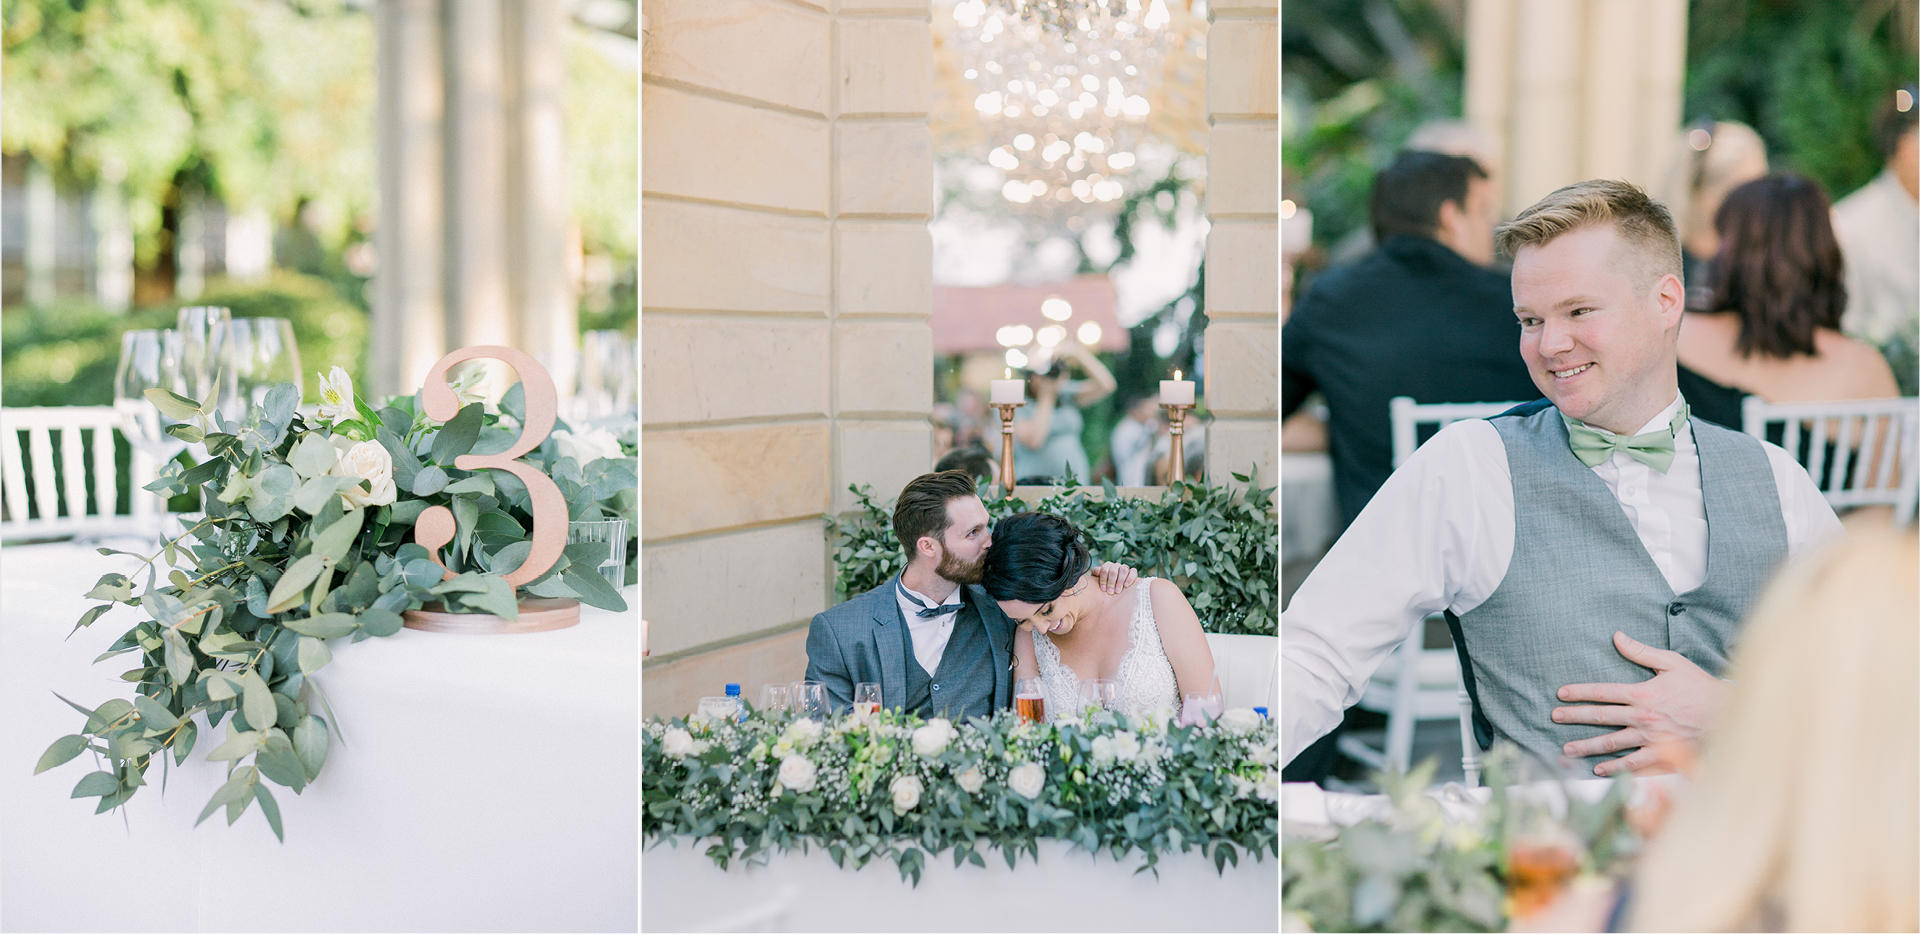 shepstone gardens wedding photographer 2017070.jpg